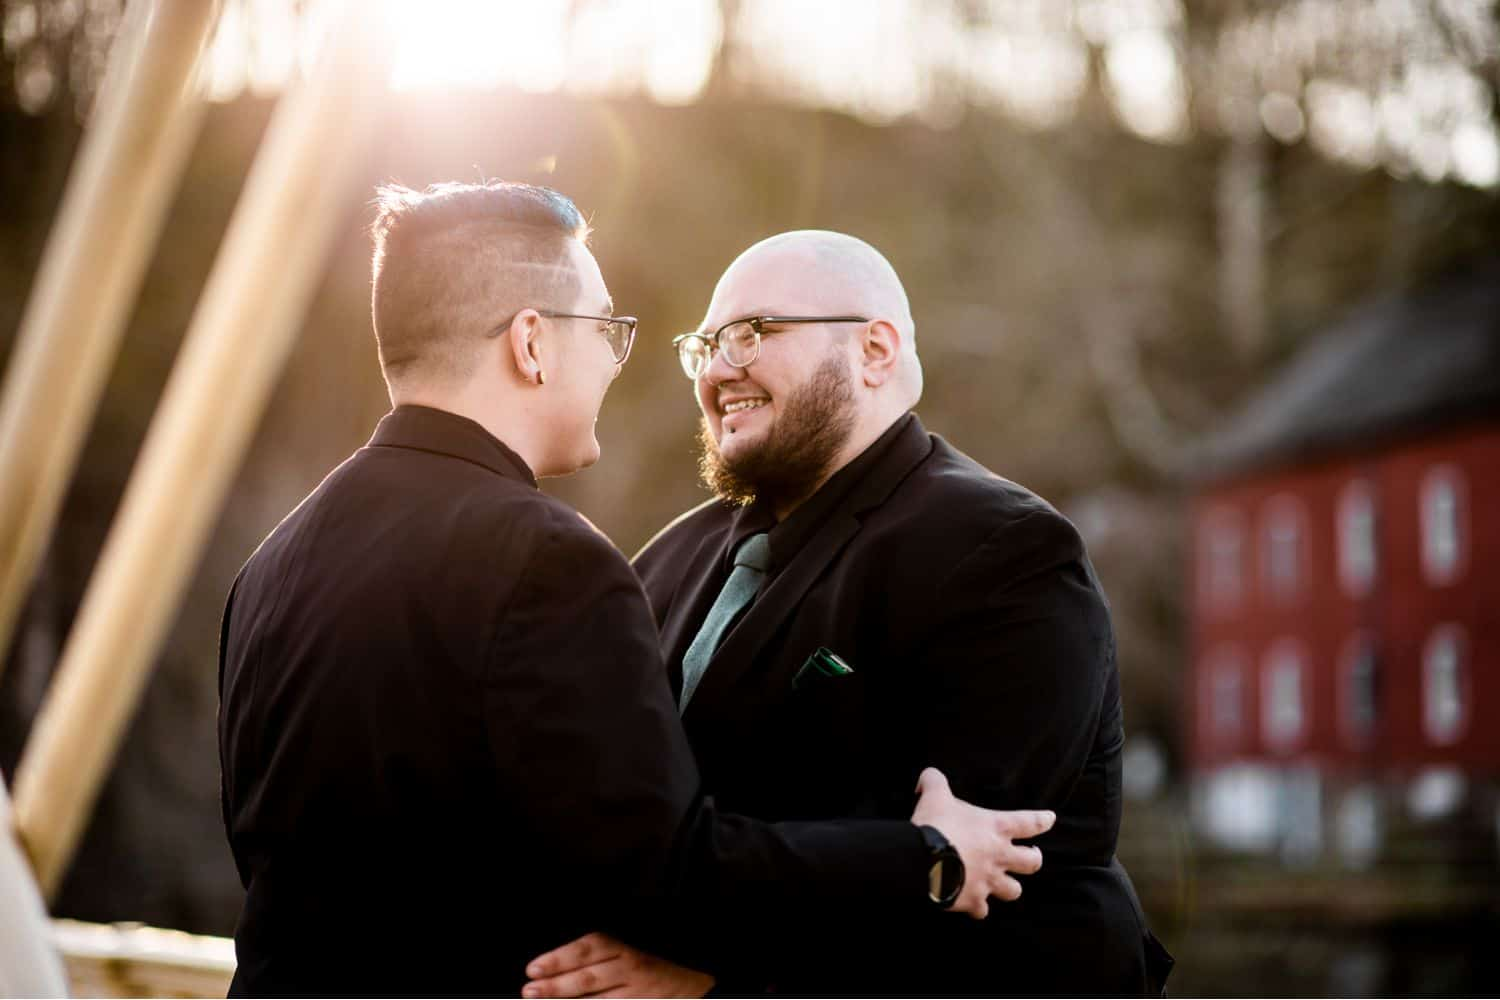 Two husbands hold one another and smile as sunlight spills onto them from behind